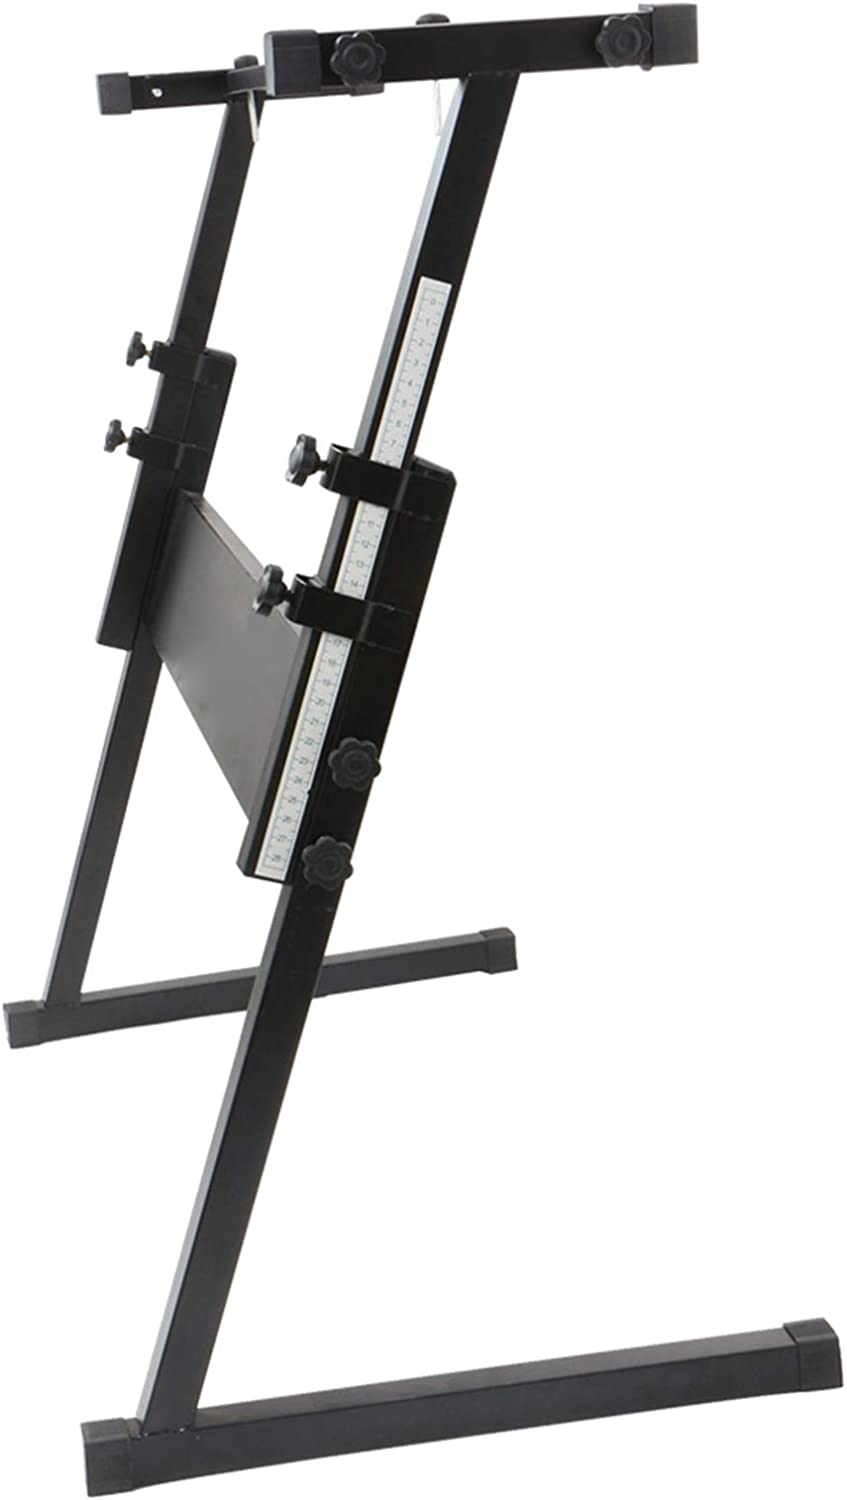 Glarry Piano Stand; Folding Retractable Heavy Duty Musical Instrument Accessory Electric Keyboard Holder Stand; Birthday Christmas Gift For Music Amateurs/&Professionals; Black